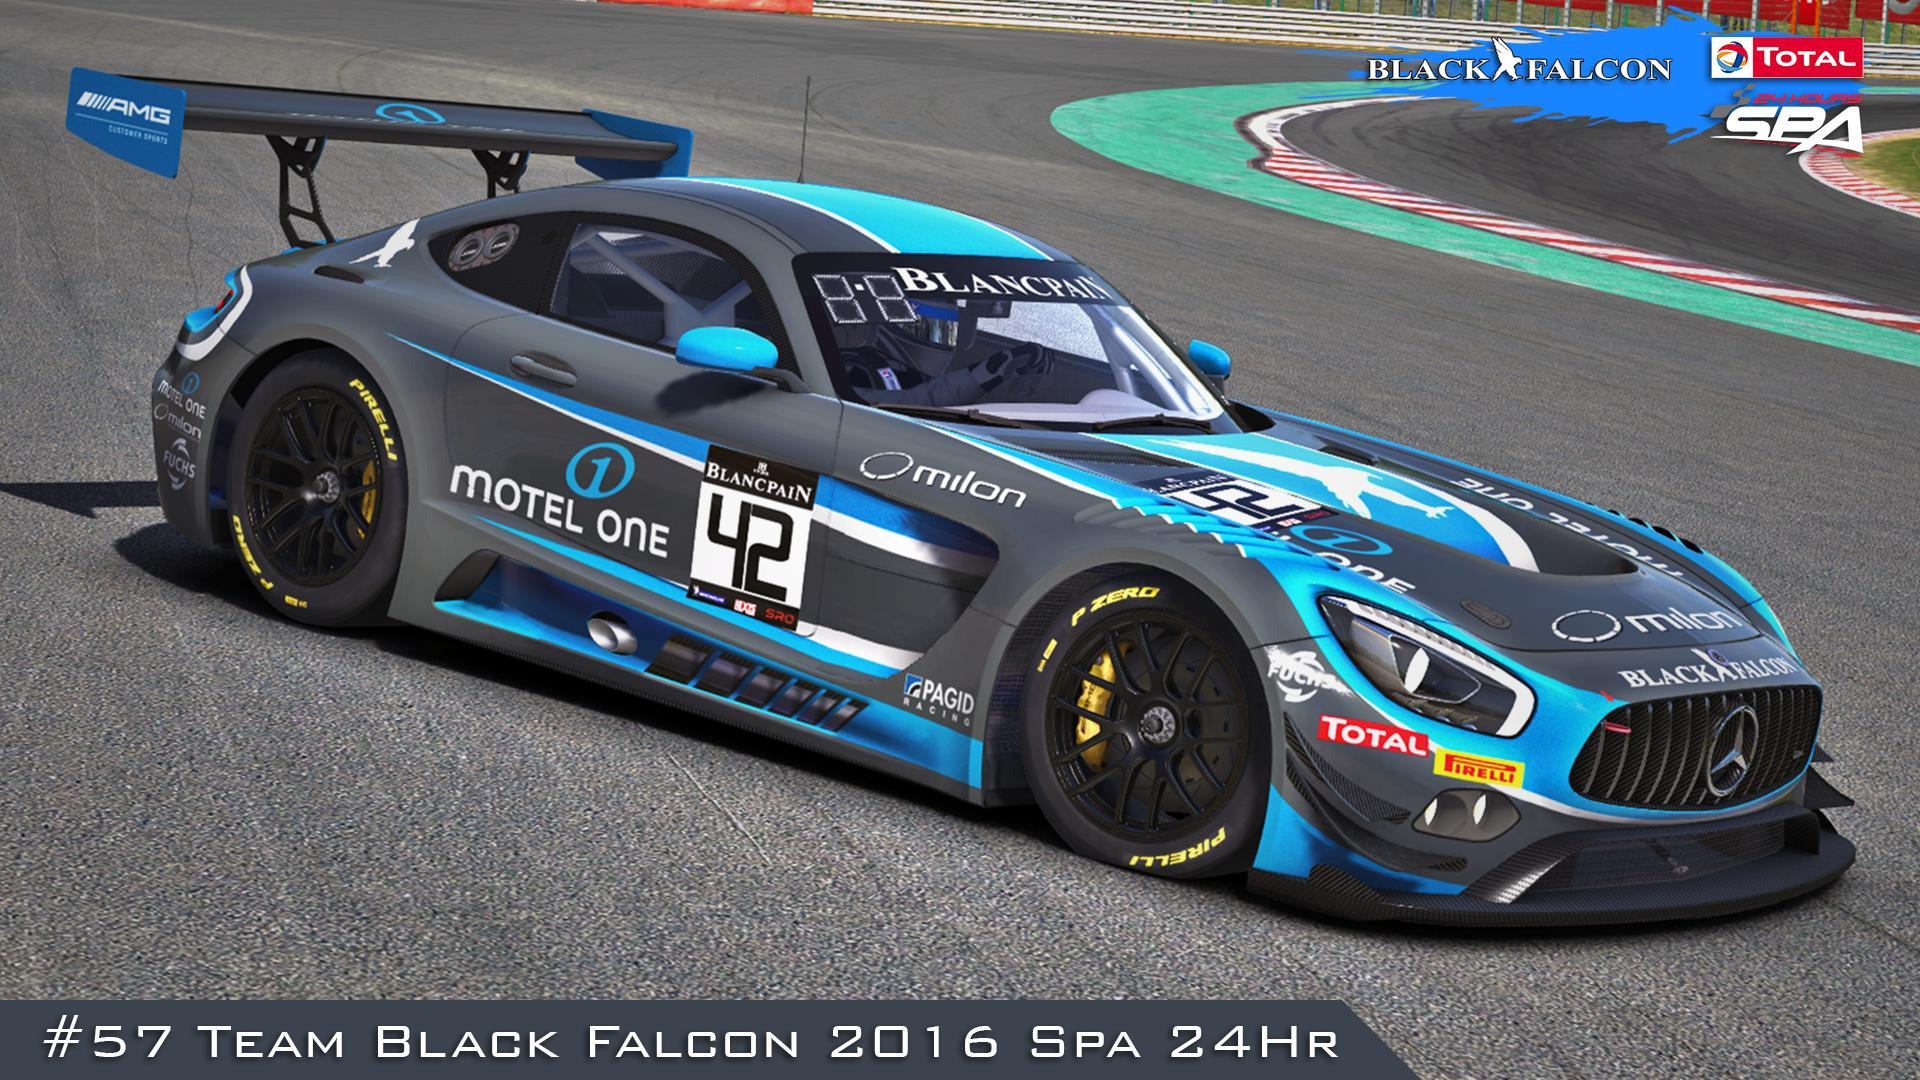 Preview of #57 Team Black Falcon (2016 Spa 24Hr) by Justin S Davis